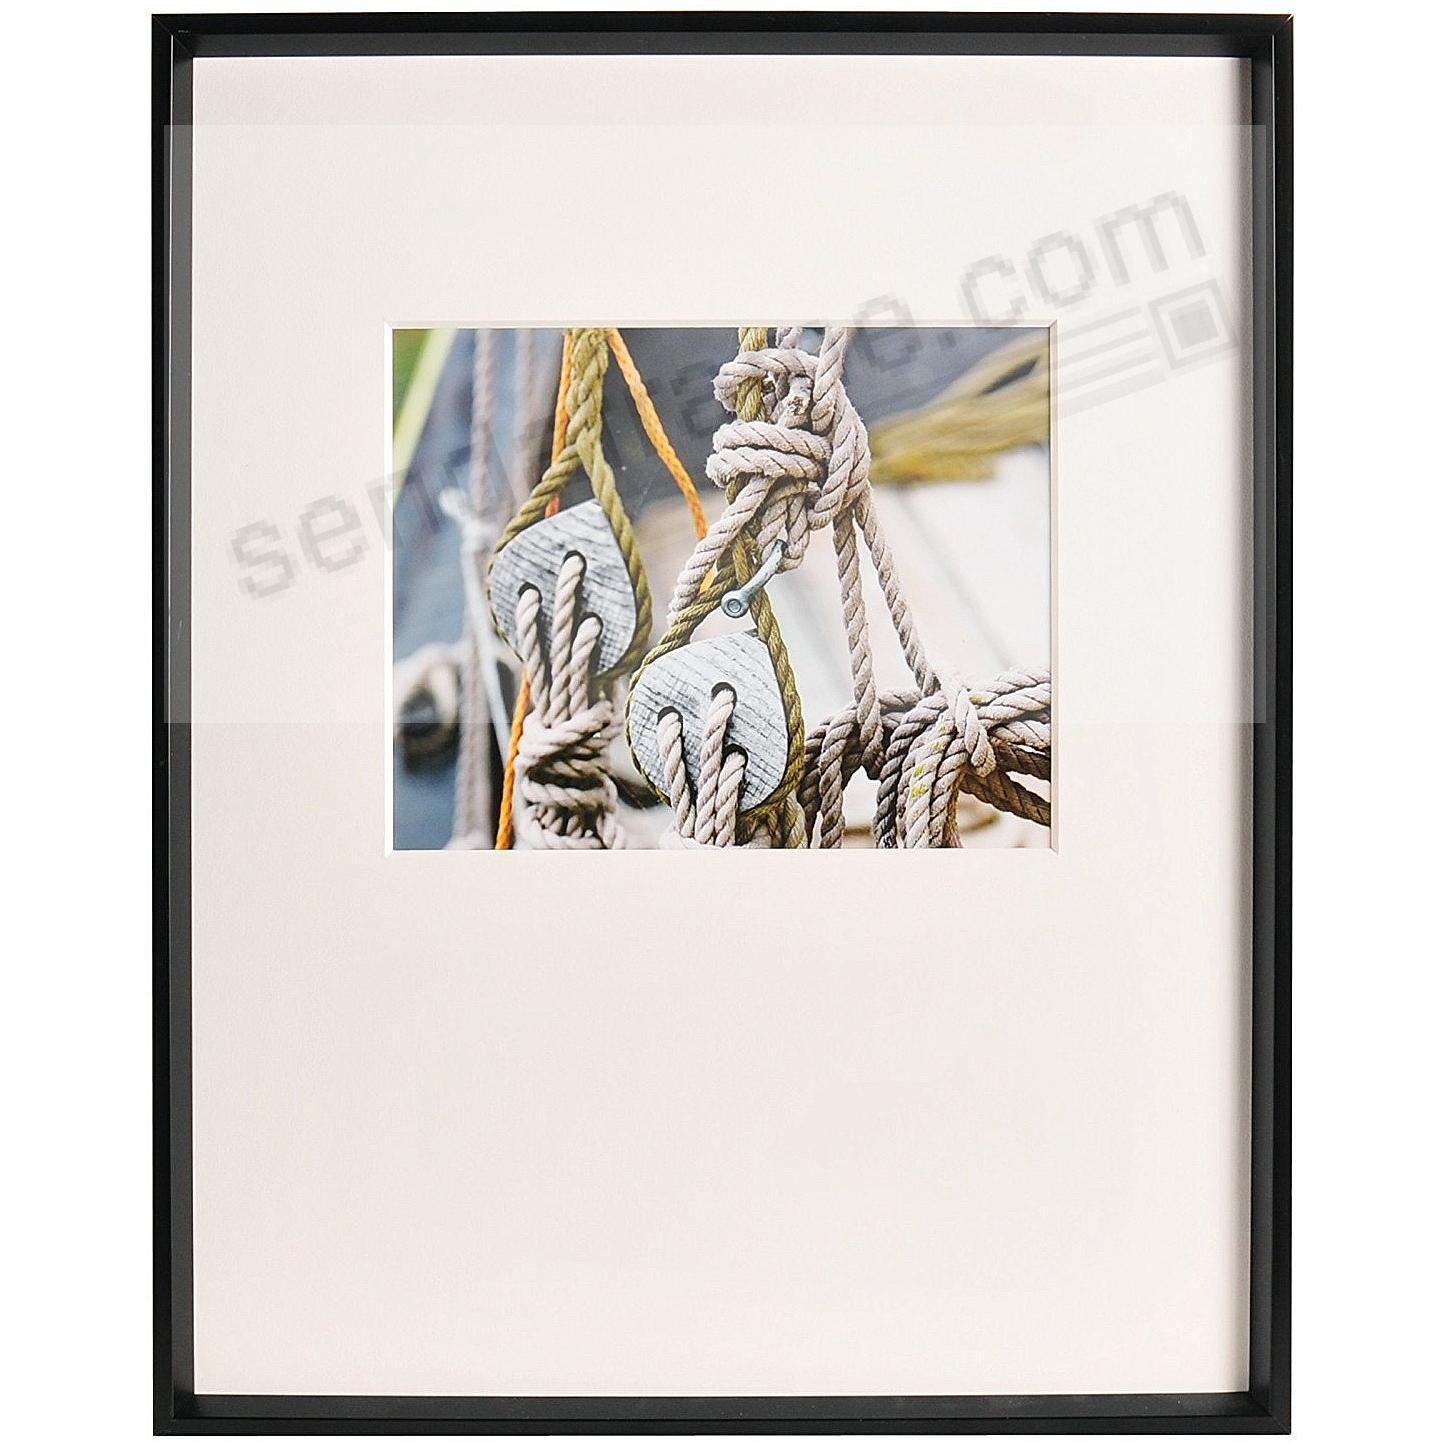 GALLERY matted Matte-Black metallic frame 16x20/10x8 from ARTCARE ...